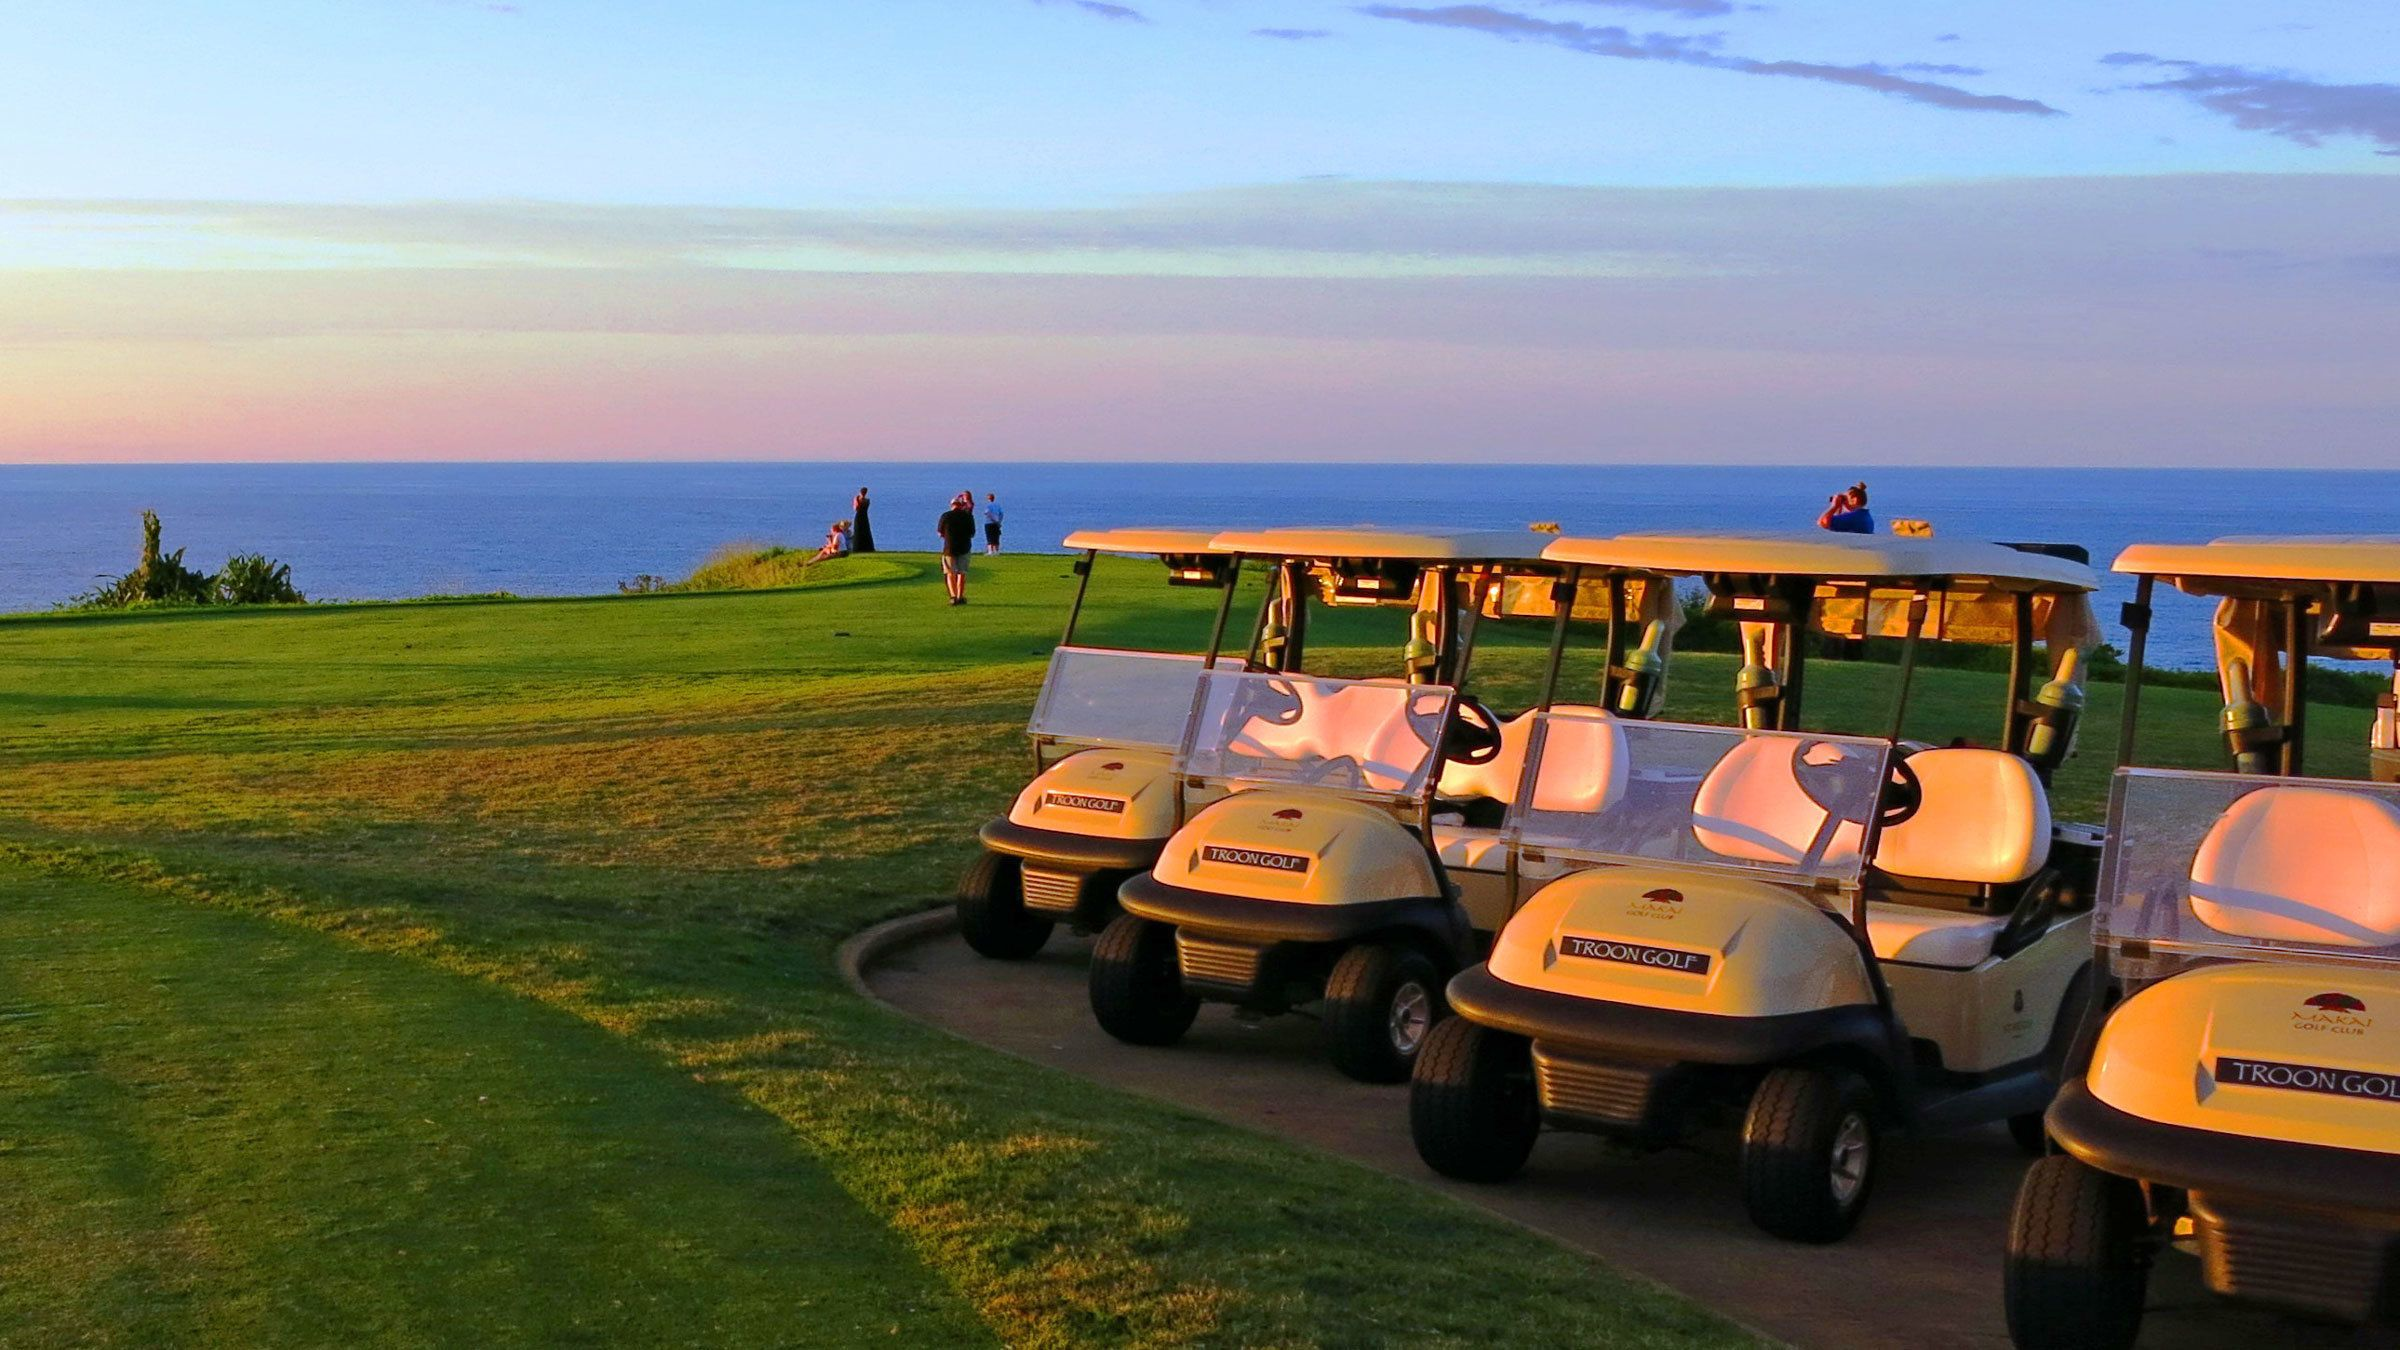 Parked golf carts at sunset on Kauai